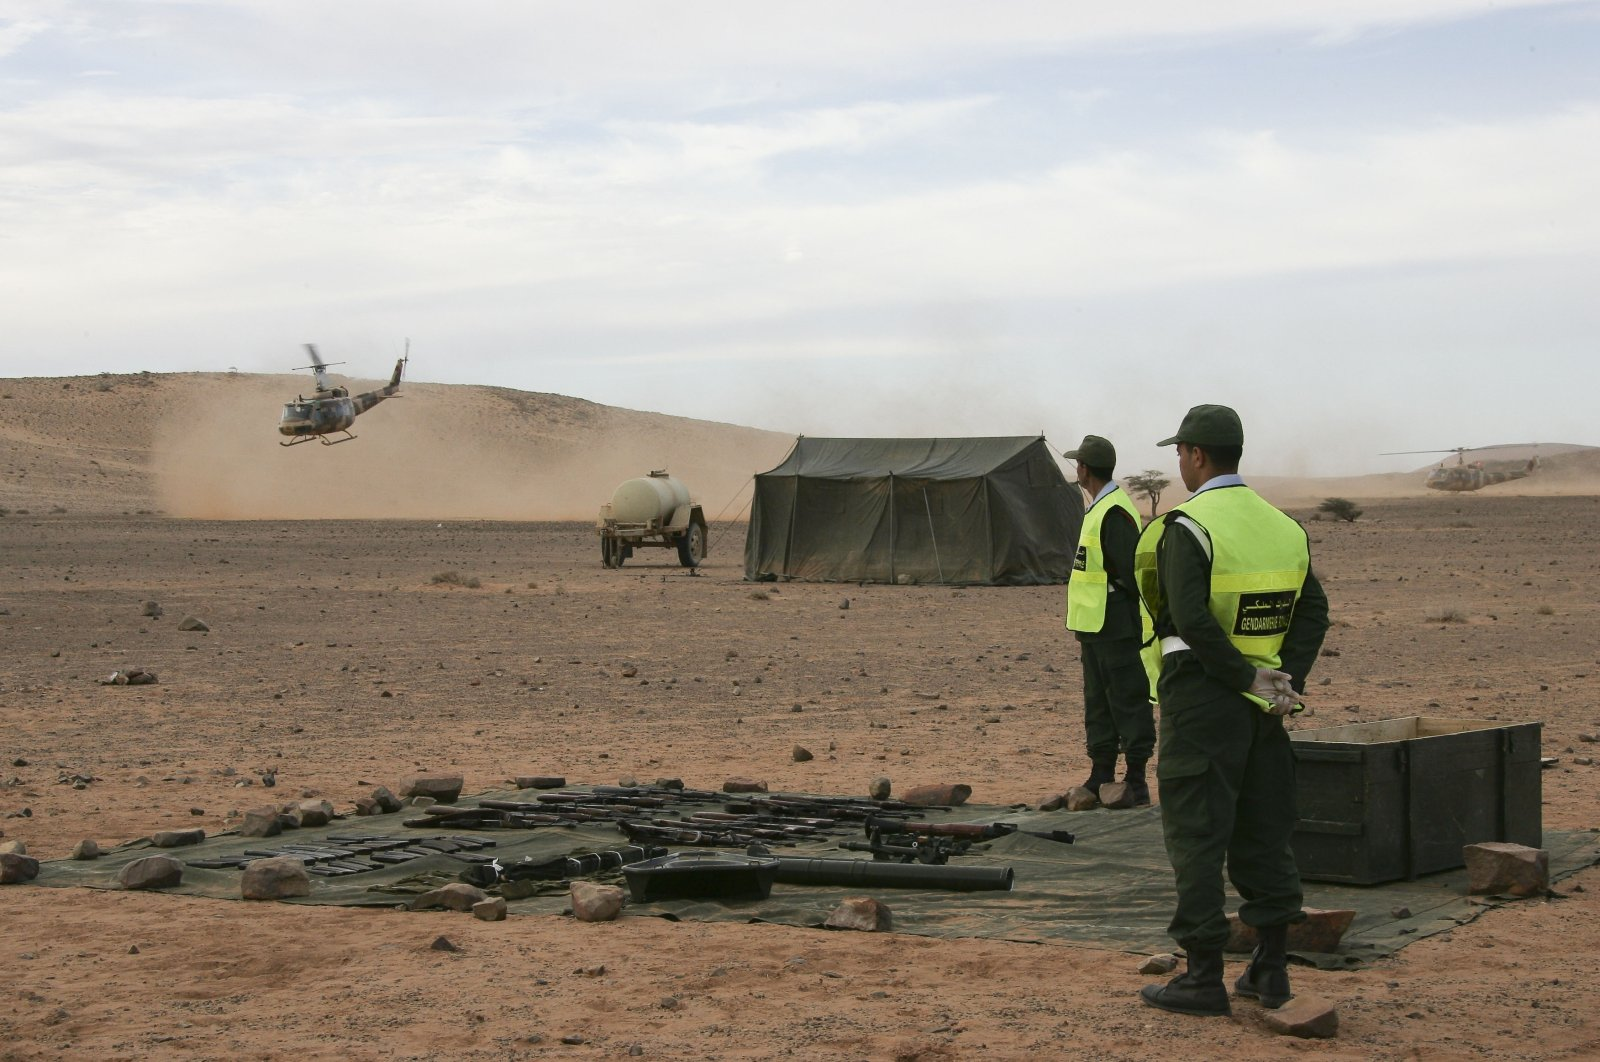 Weapons discovered by Moroccan police in Western Sahara are laid out, in Laayoune, Western Sahara, Jan. 5, 2011. (AP Photo)